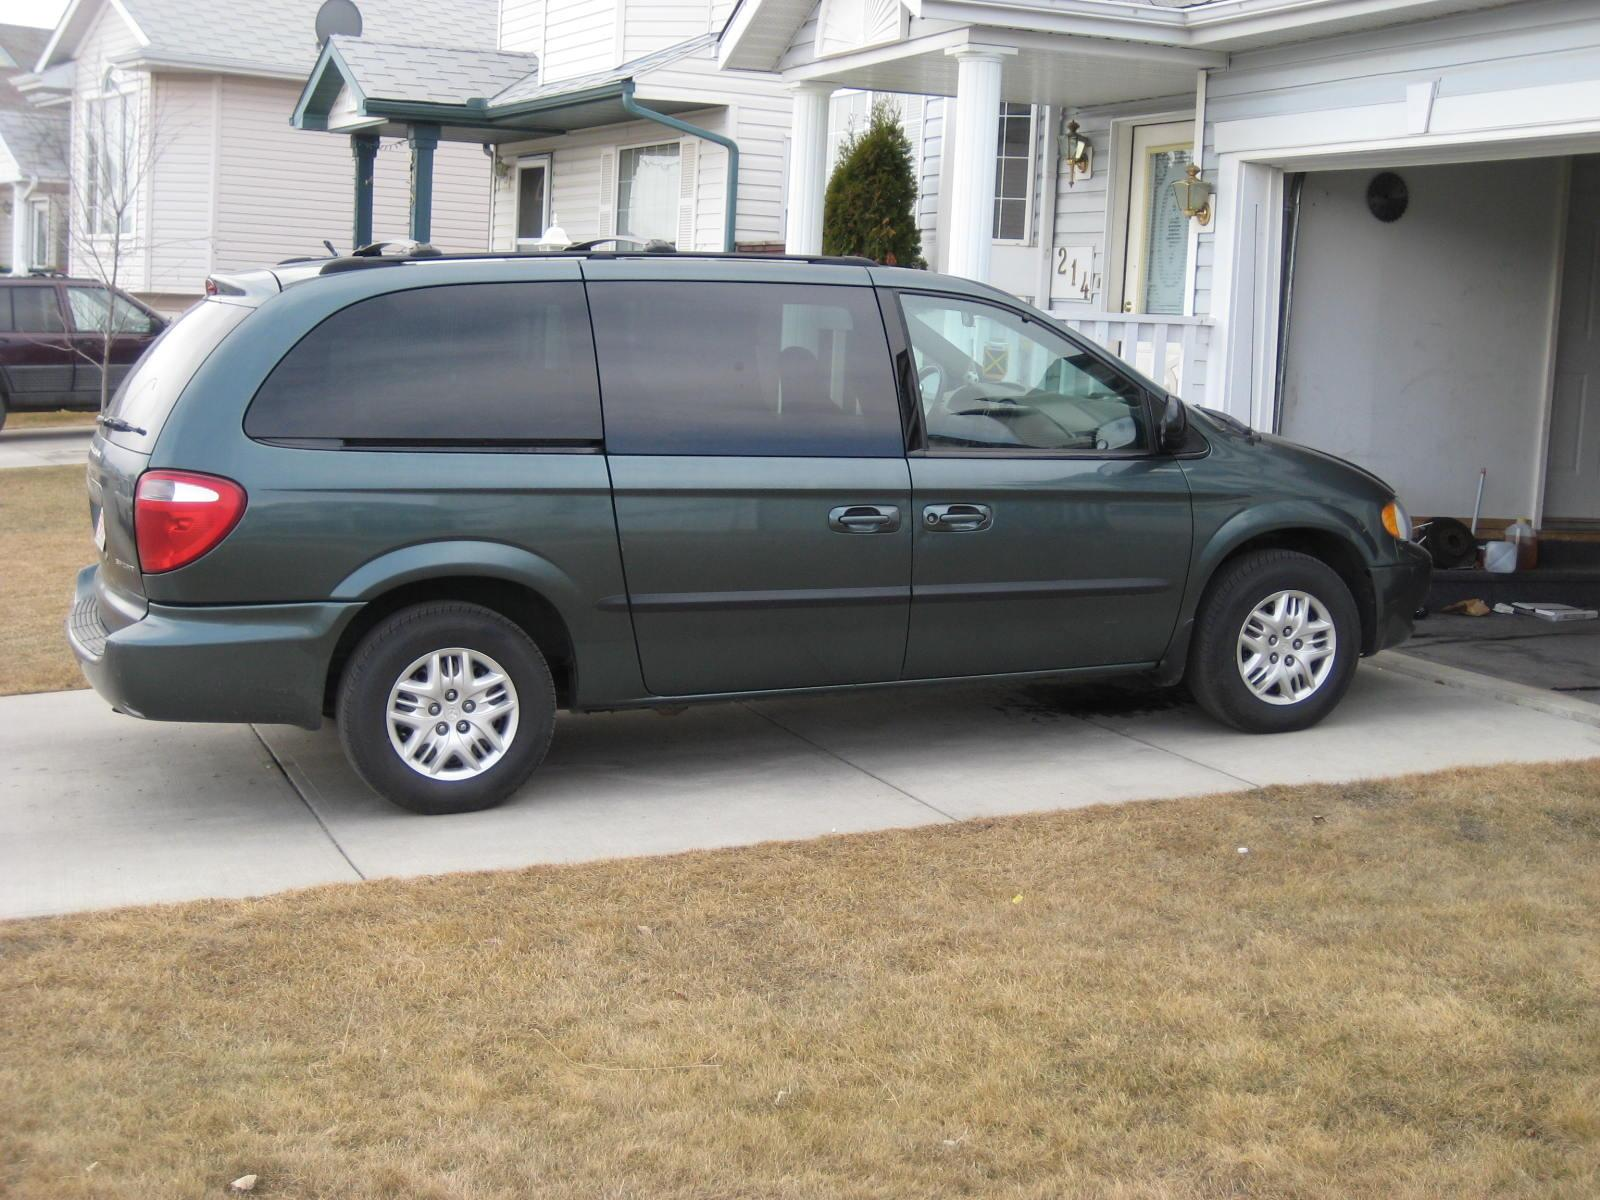 brotha man 2002 dodge grand caravan passengersport minivan 4d specs photos modification info. Black Bedroom Furniture Sets. Home Design Ideas